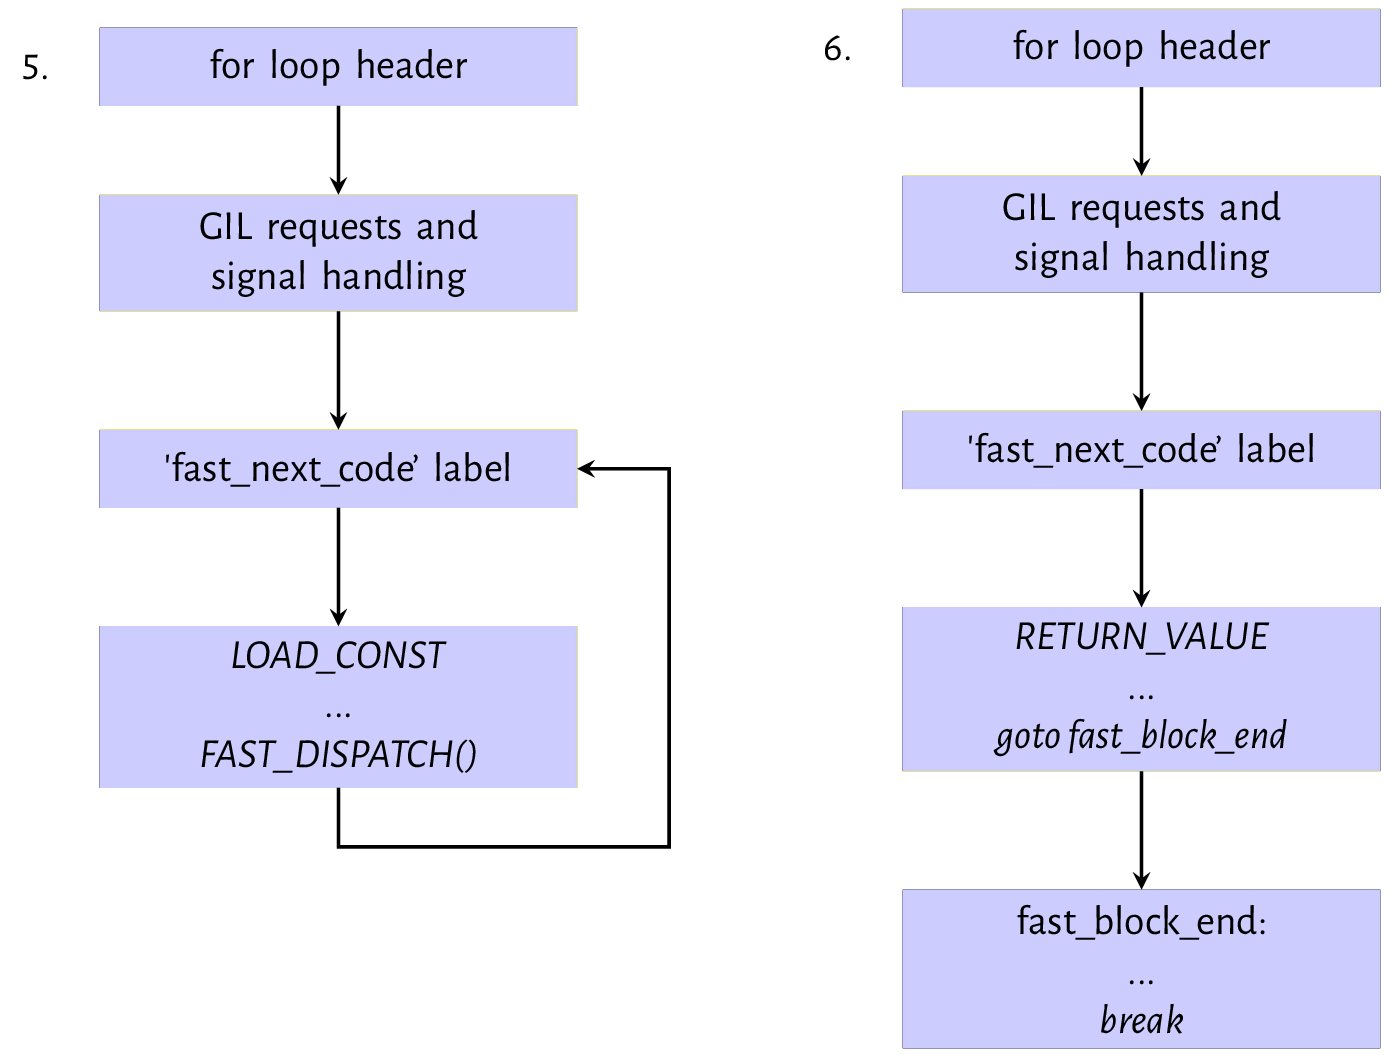 Figure 9.3: Evaluation path for `LOAD_CONST` and `RETURN_VALUE` instruction